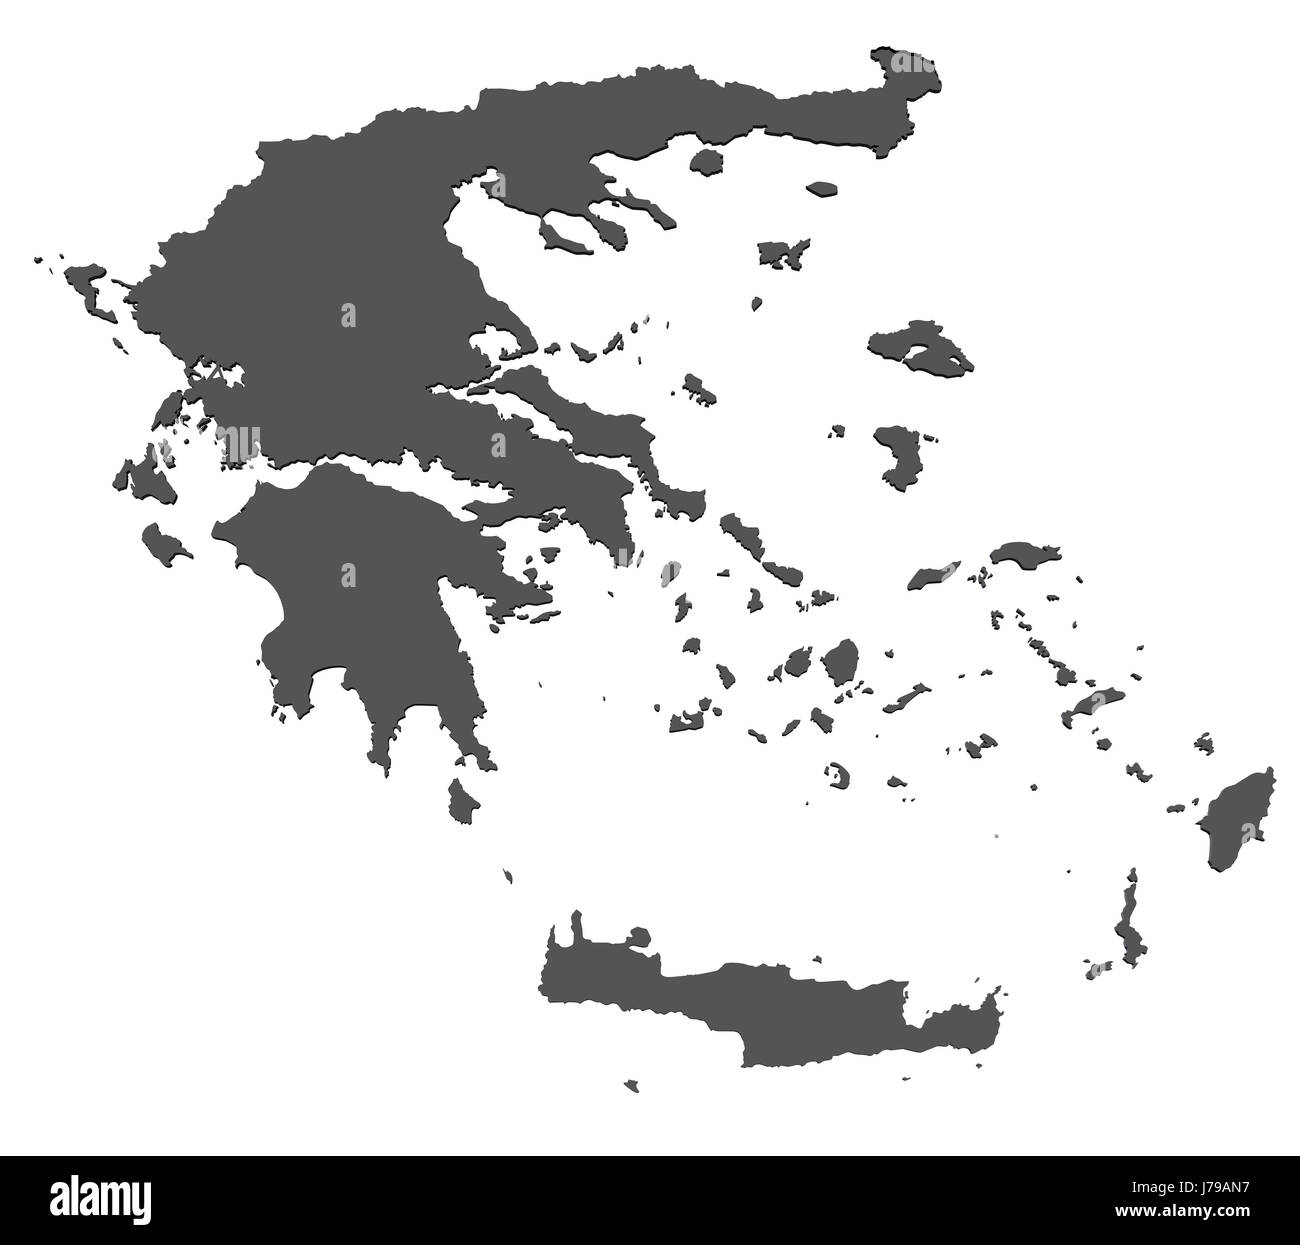 greece europe card European Union athens joining atlas map ...